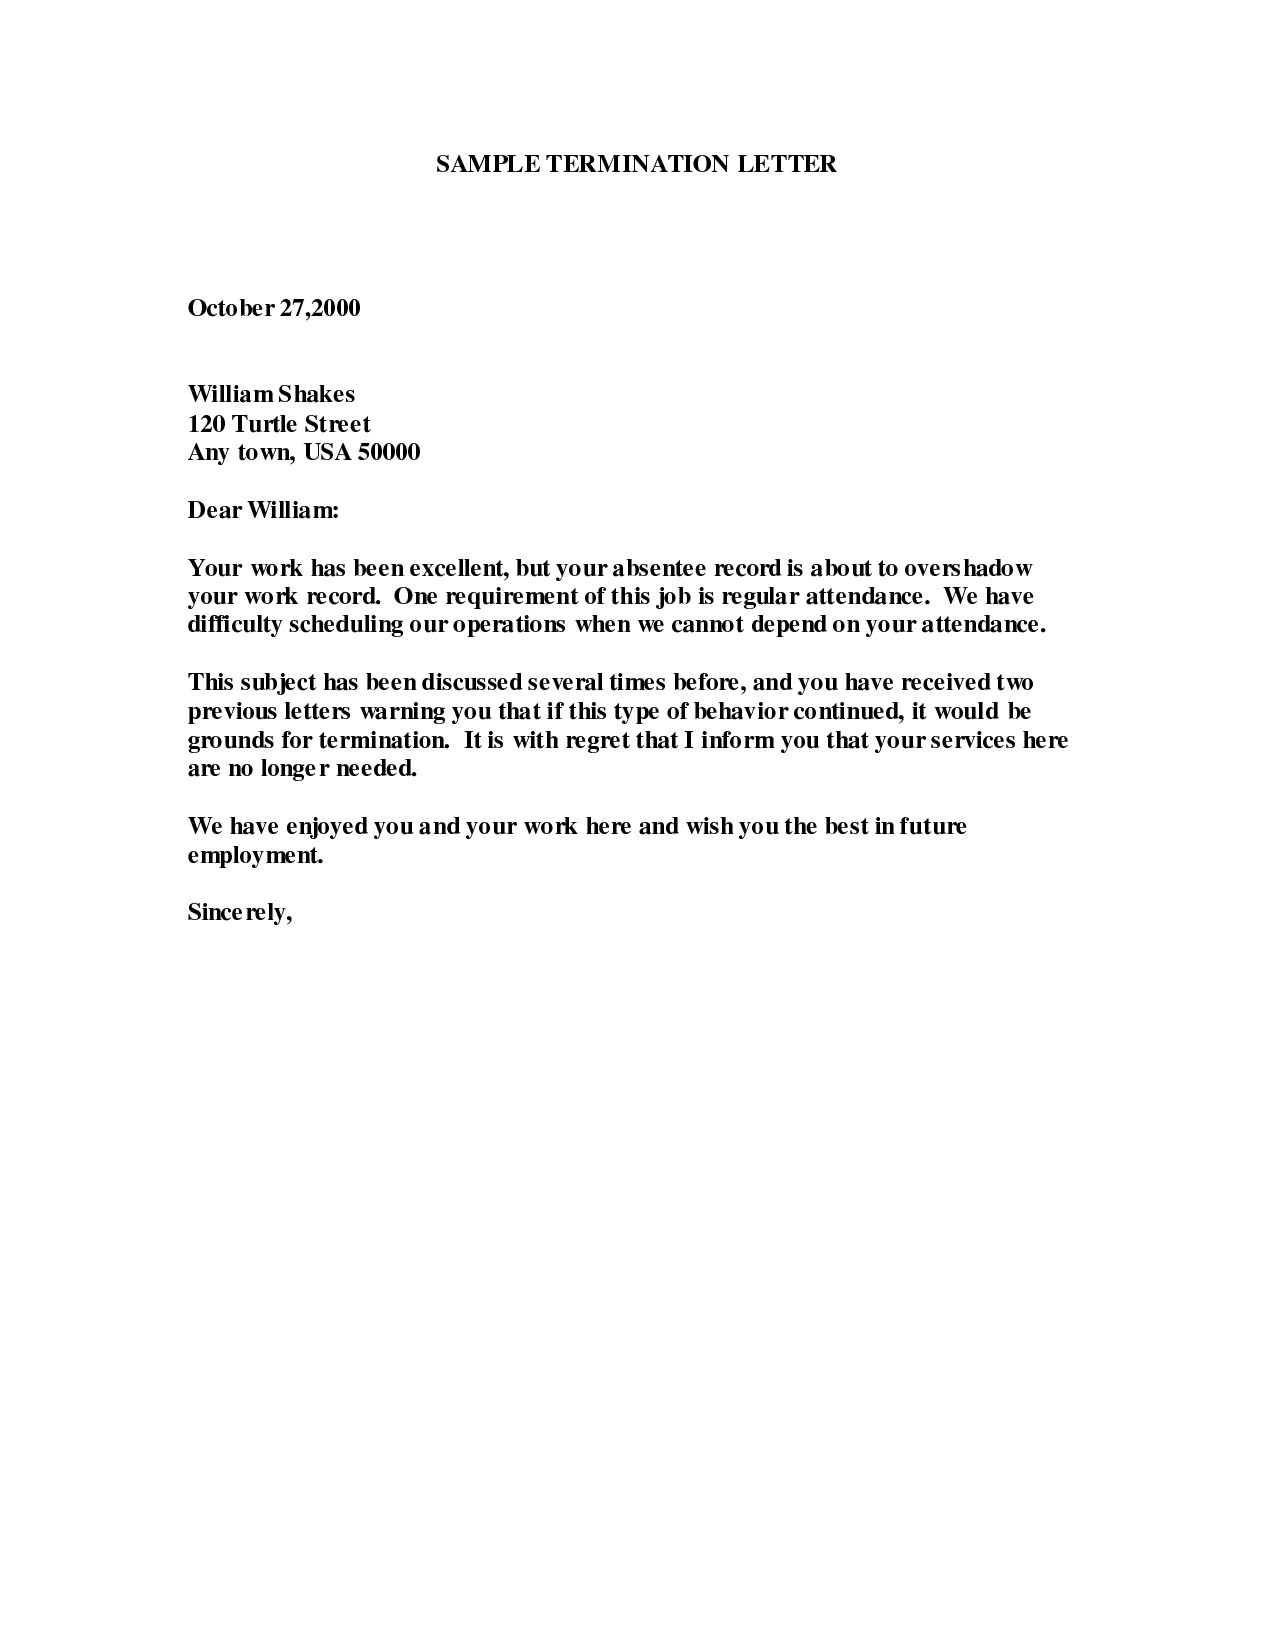 termination of employment letter template collection letter cover